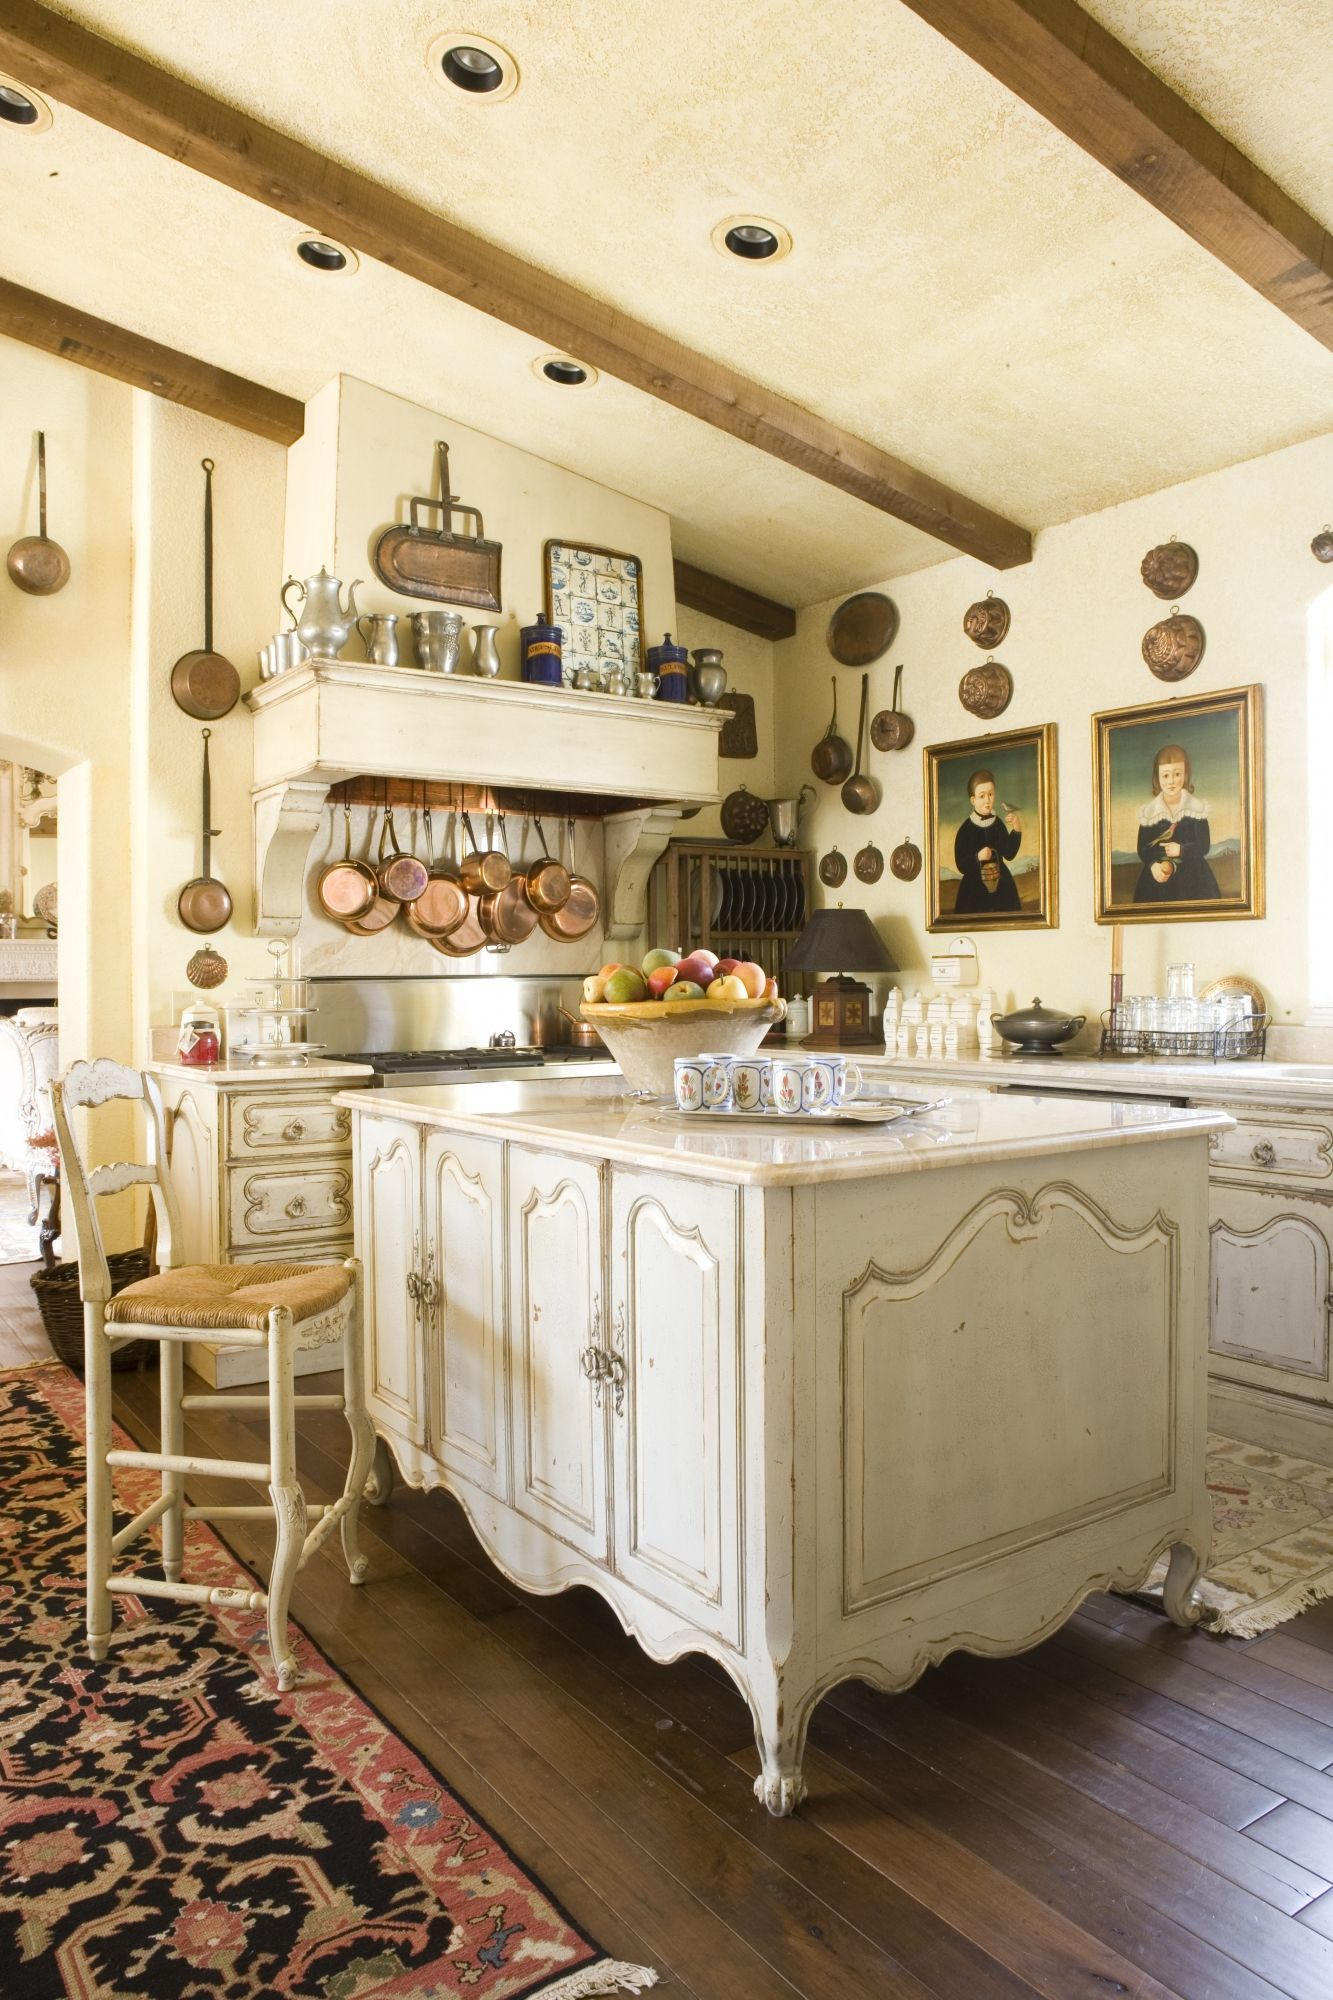 Dream Country Kitchen Habersham Upscale Country Kitchen Cultivate I Could Move In